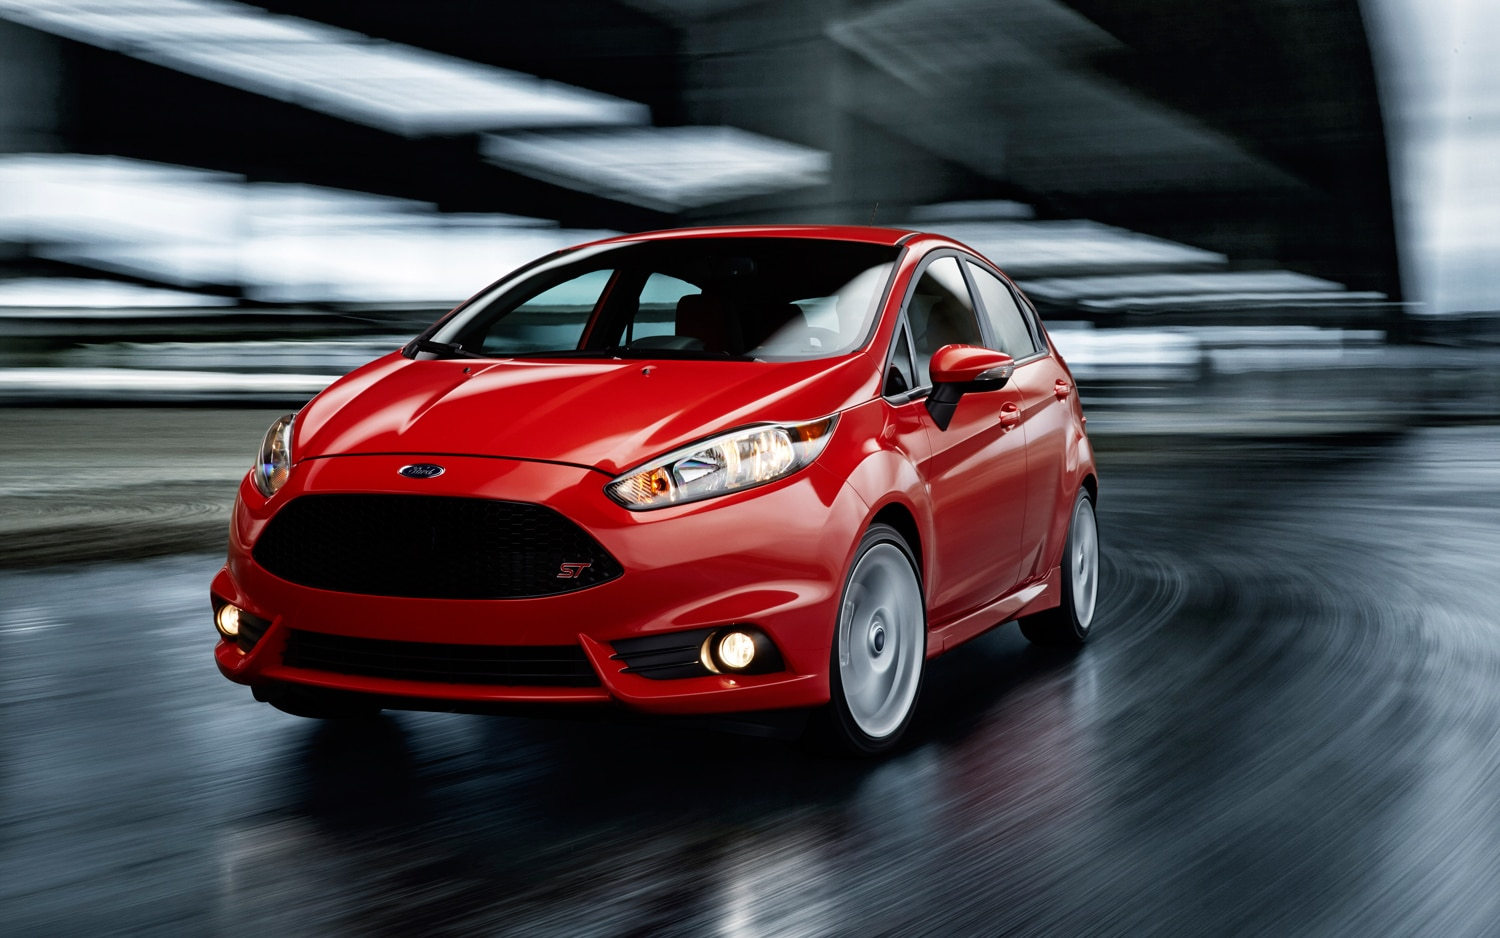 2014 Ford Fiesta ST Front Left View 31